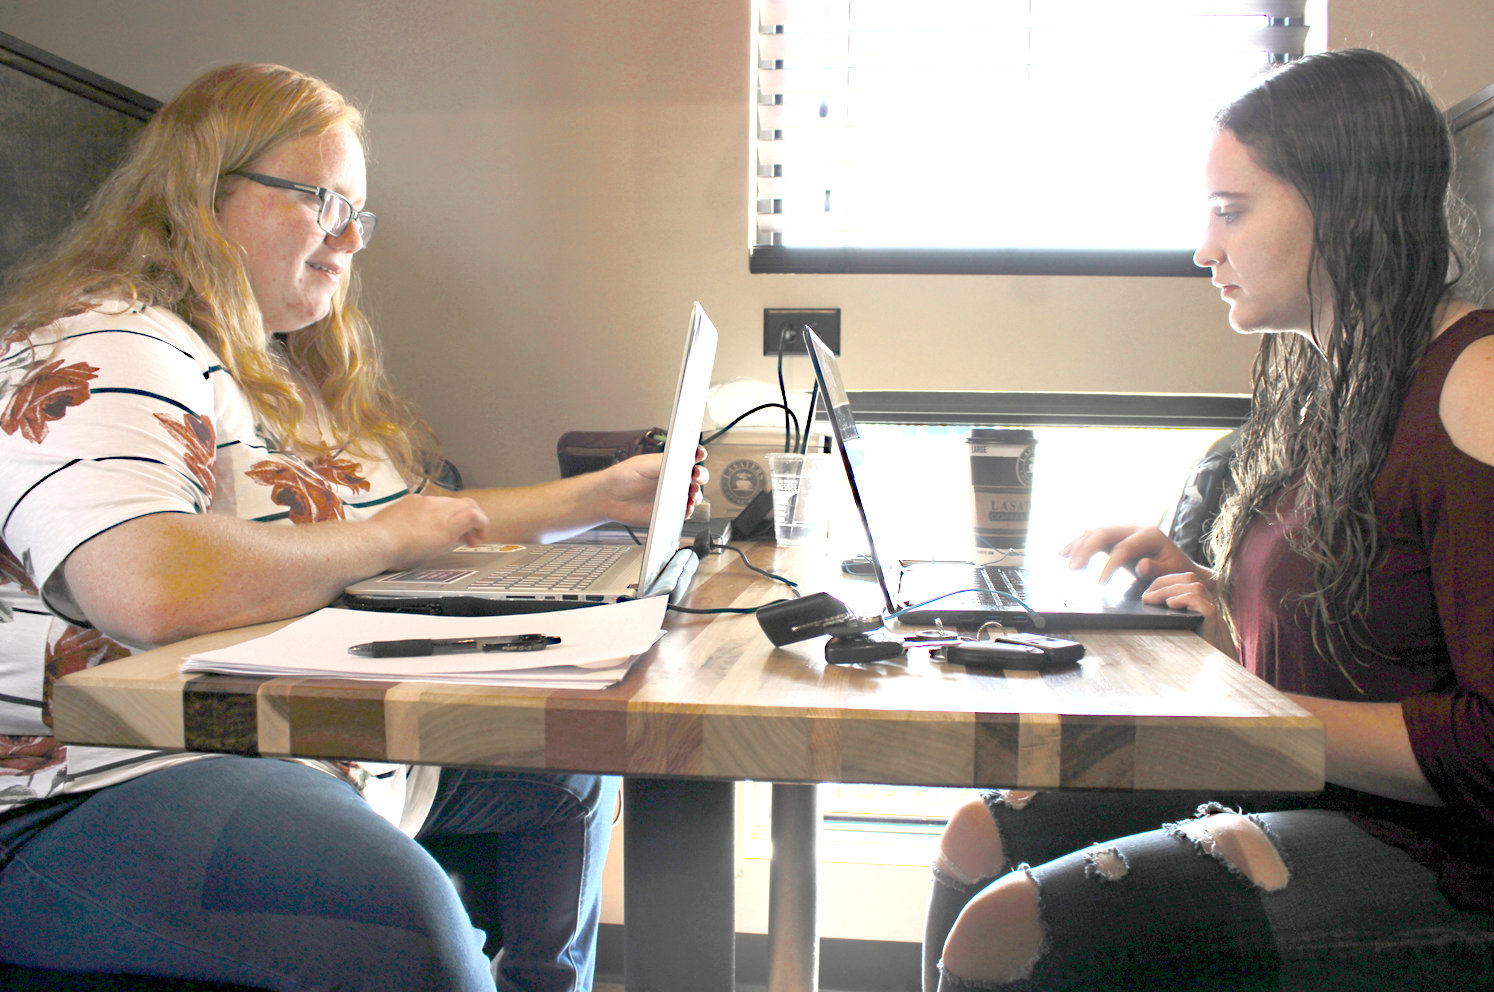 LEE UNIVERSITY STUDENTS Chelsa Flanary and Miranda Sawyer connect to the Wi-Fi at Lasater's Coffee and Tea to work on their assignments during cafe hours. While not the case for these students, many local residents struggling to afford expenses like internet service at home get their internet access at public places like libraries and cafes.